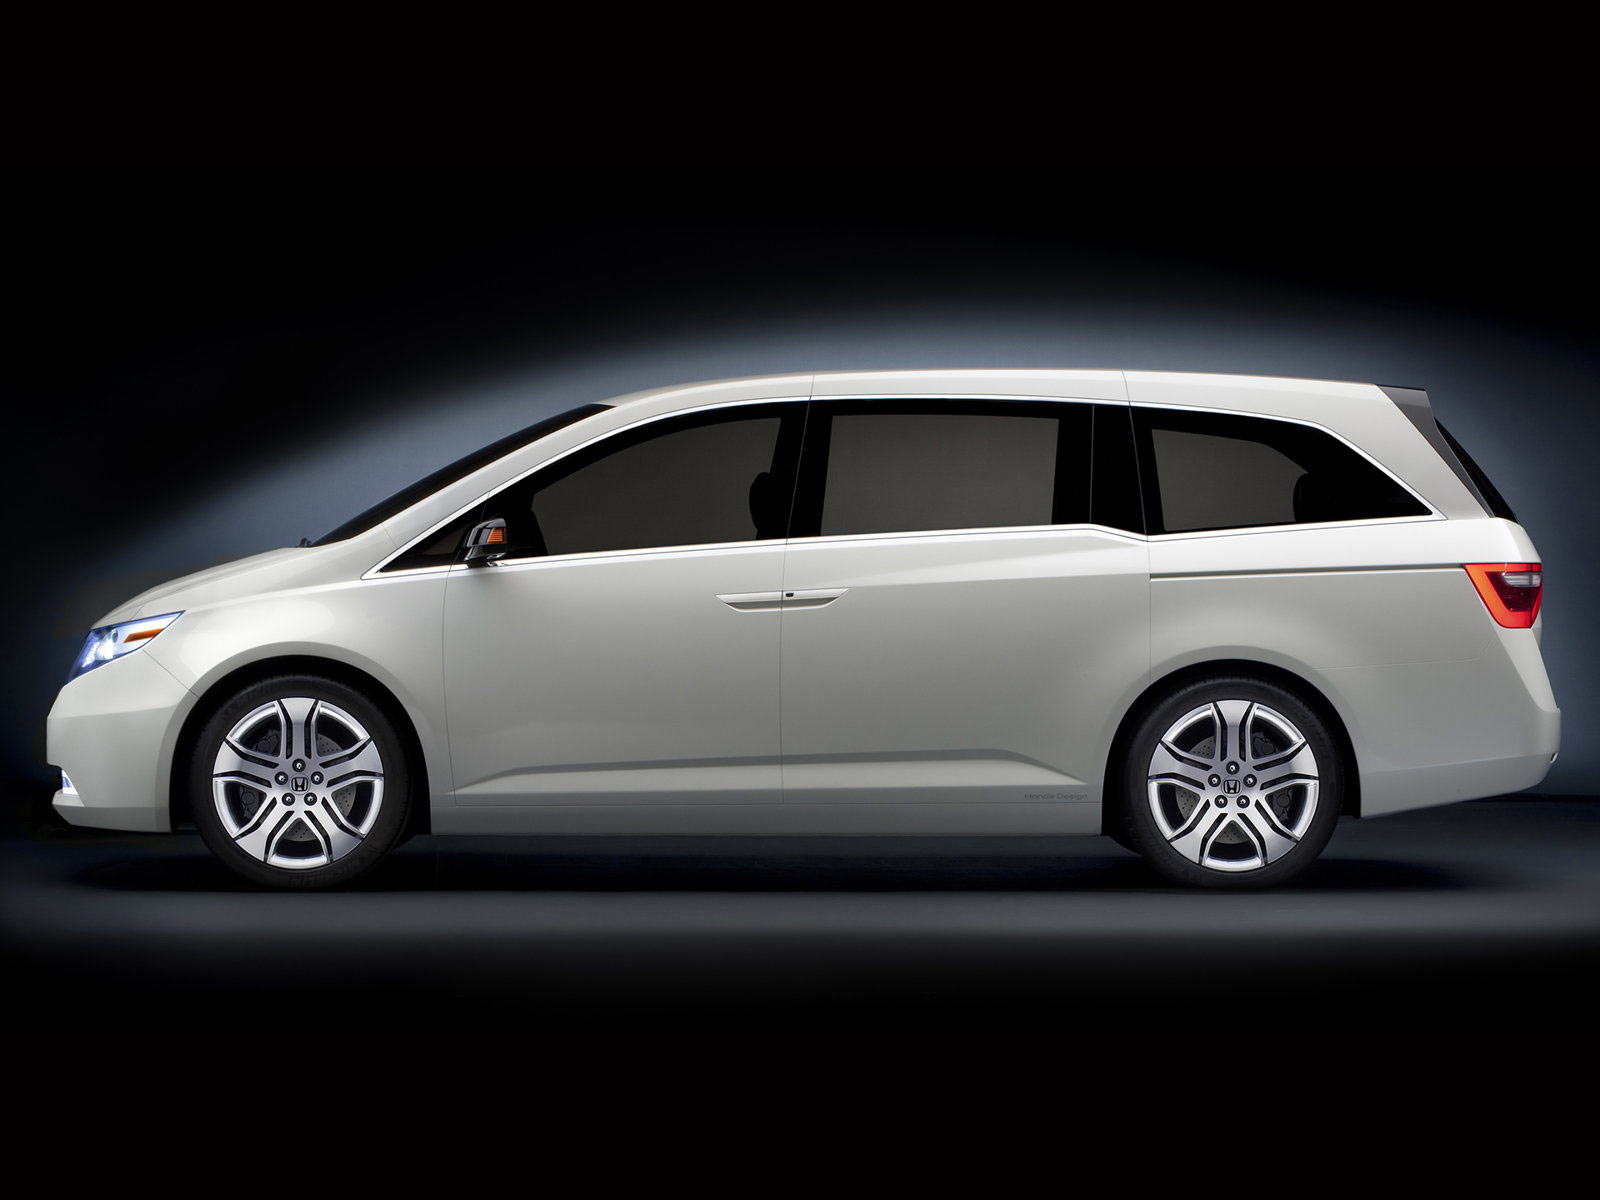 2010 Honda Odyssey Concept Car Photos Accident Lawyers Info